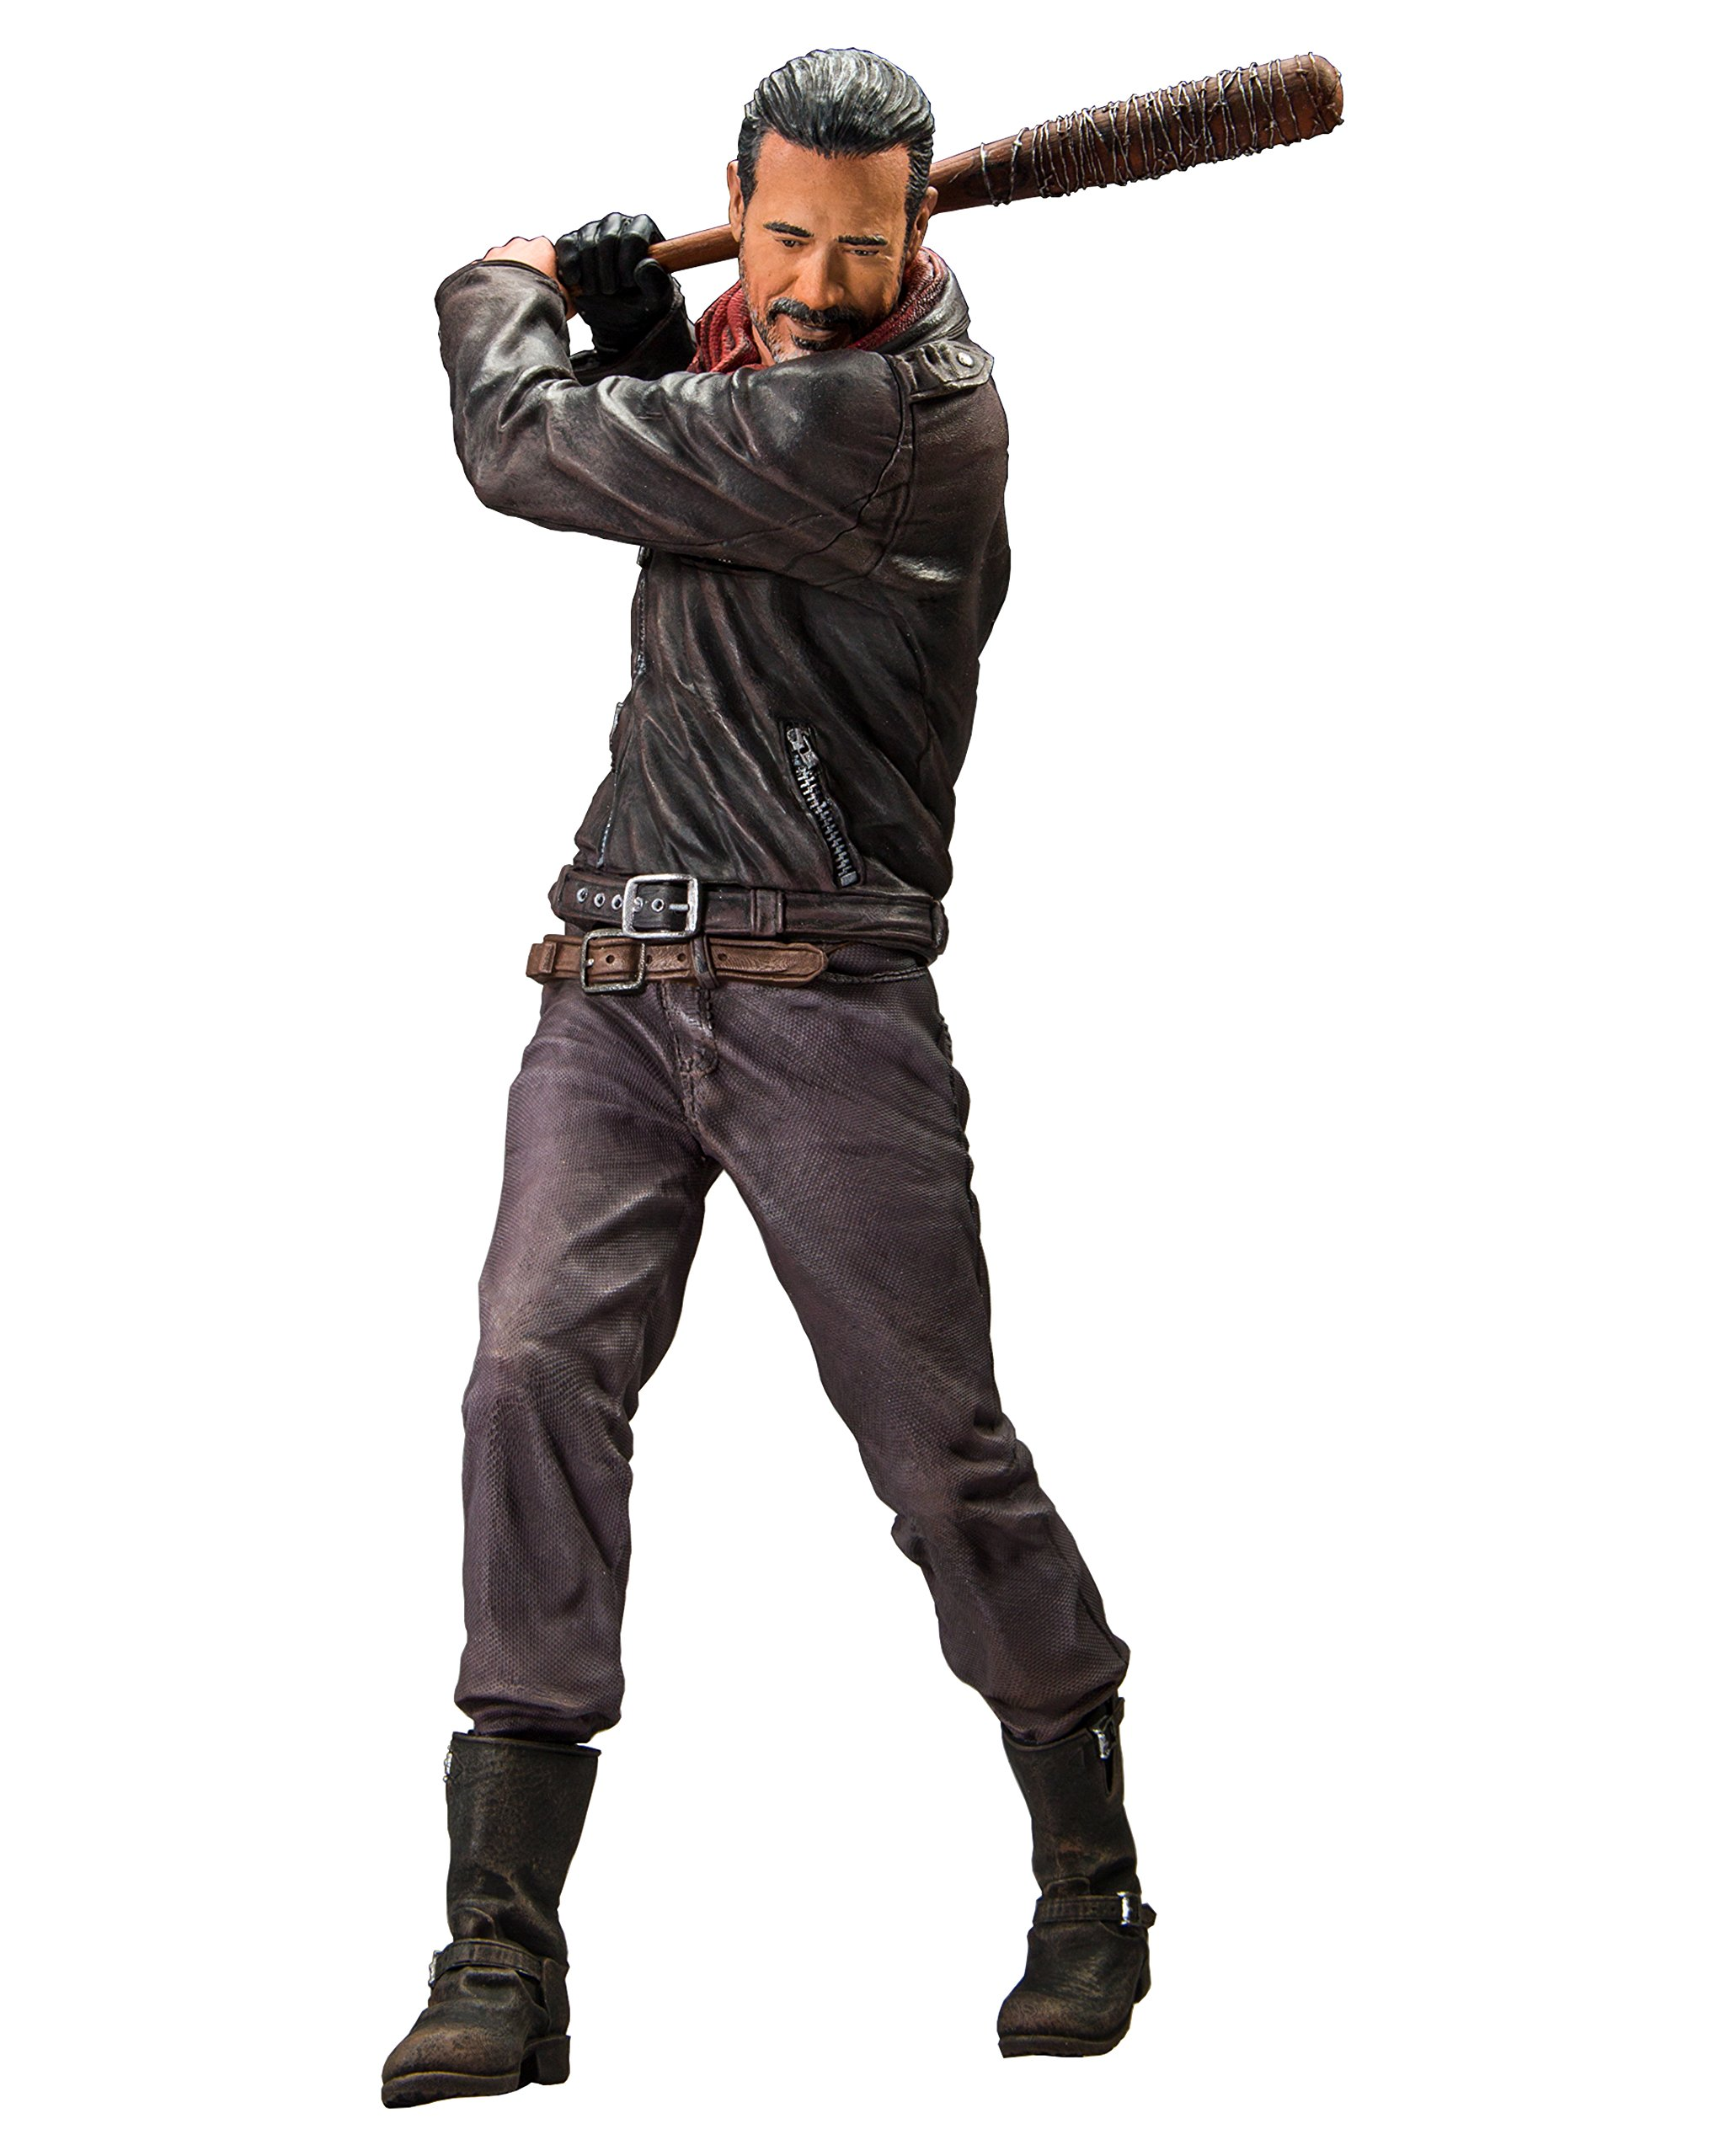 Walking Dead Negan Figure